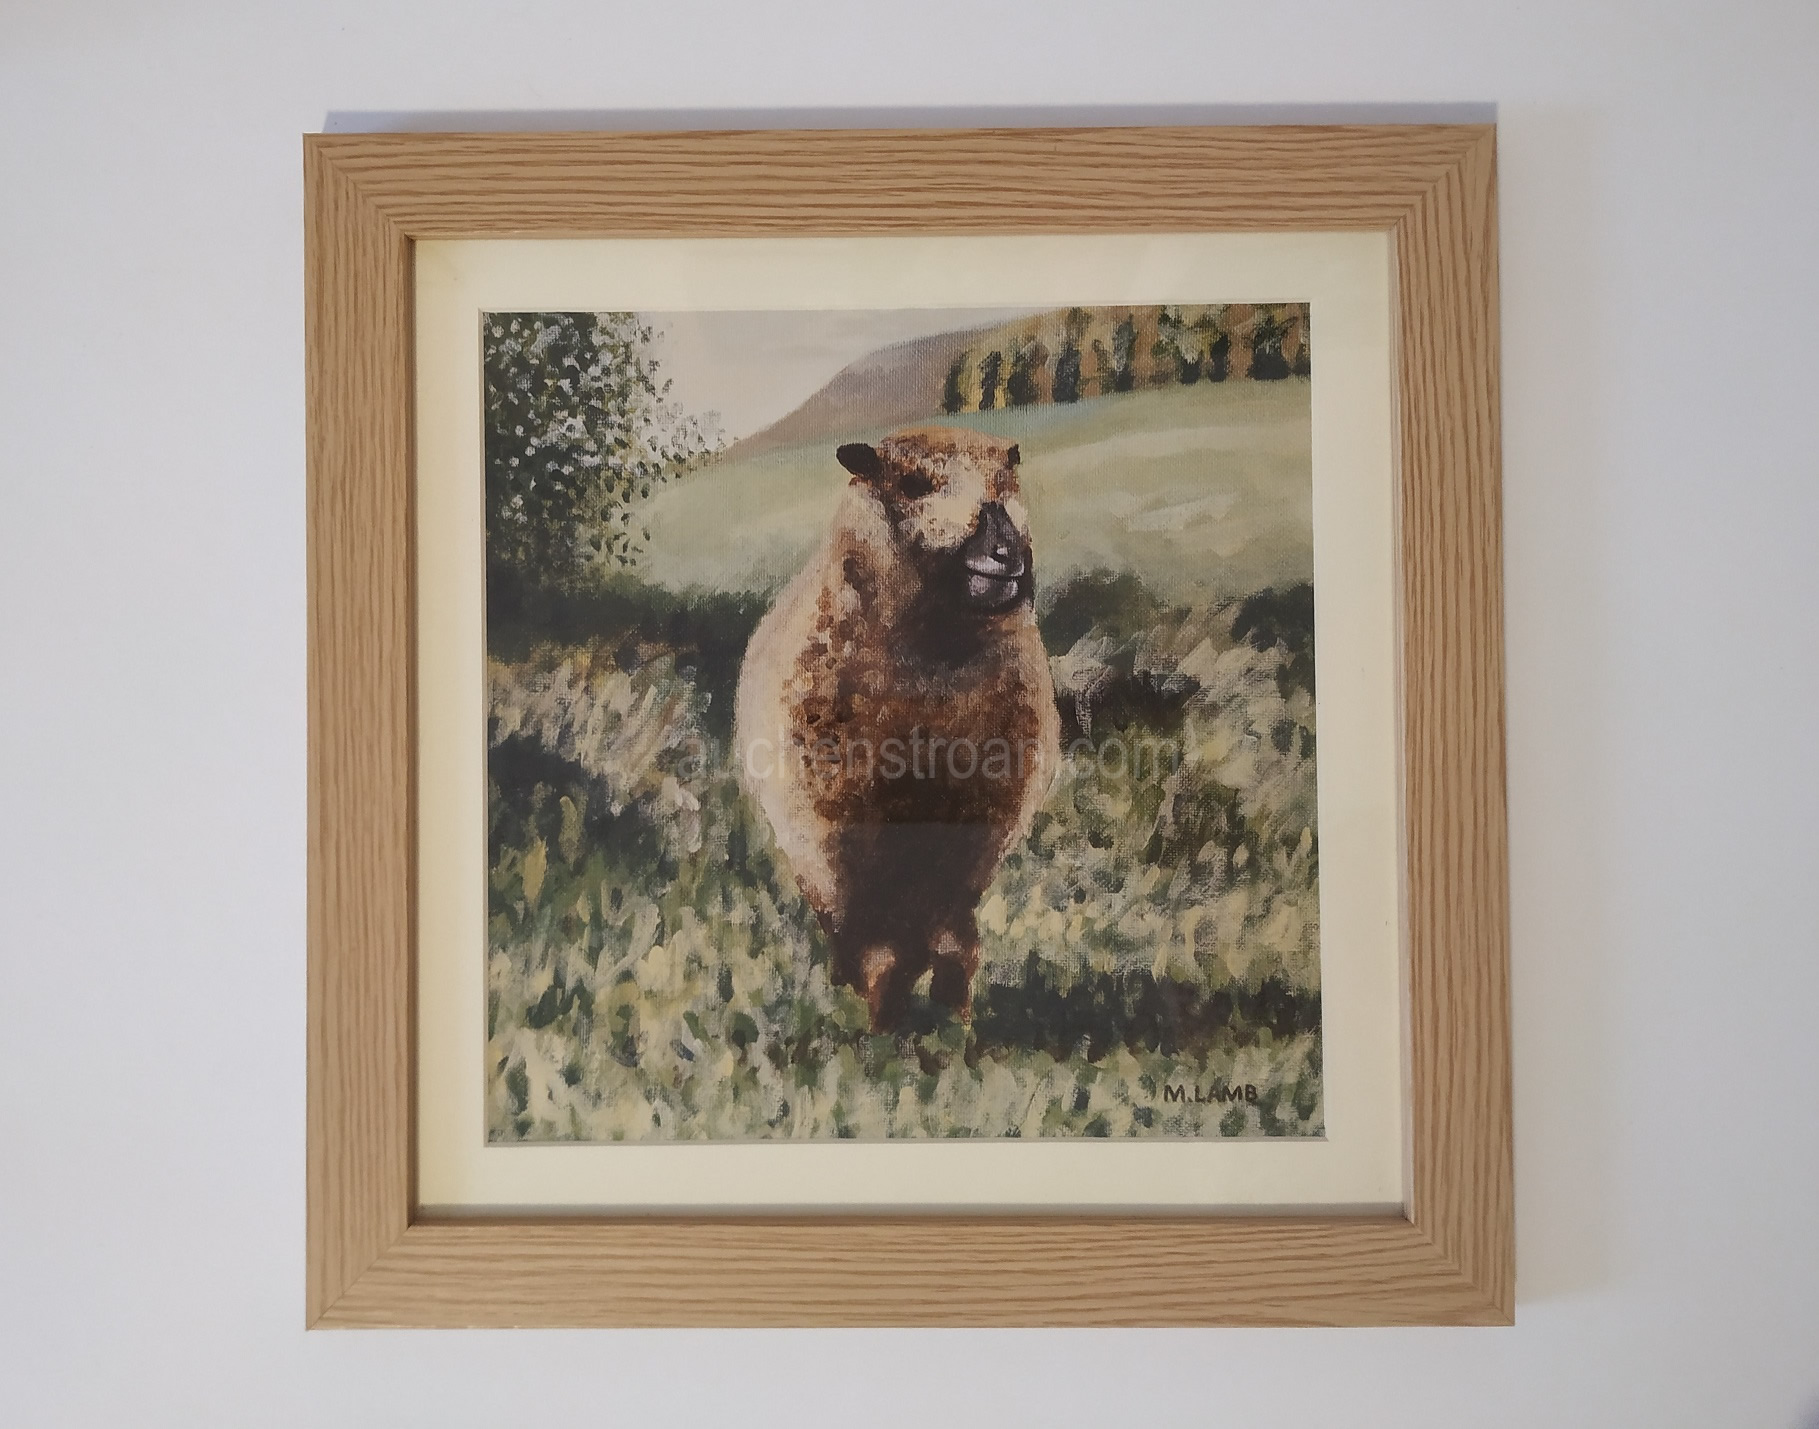 Gifts for sheep lovers - Ynca framed